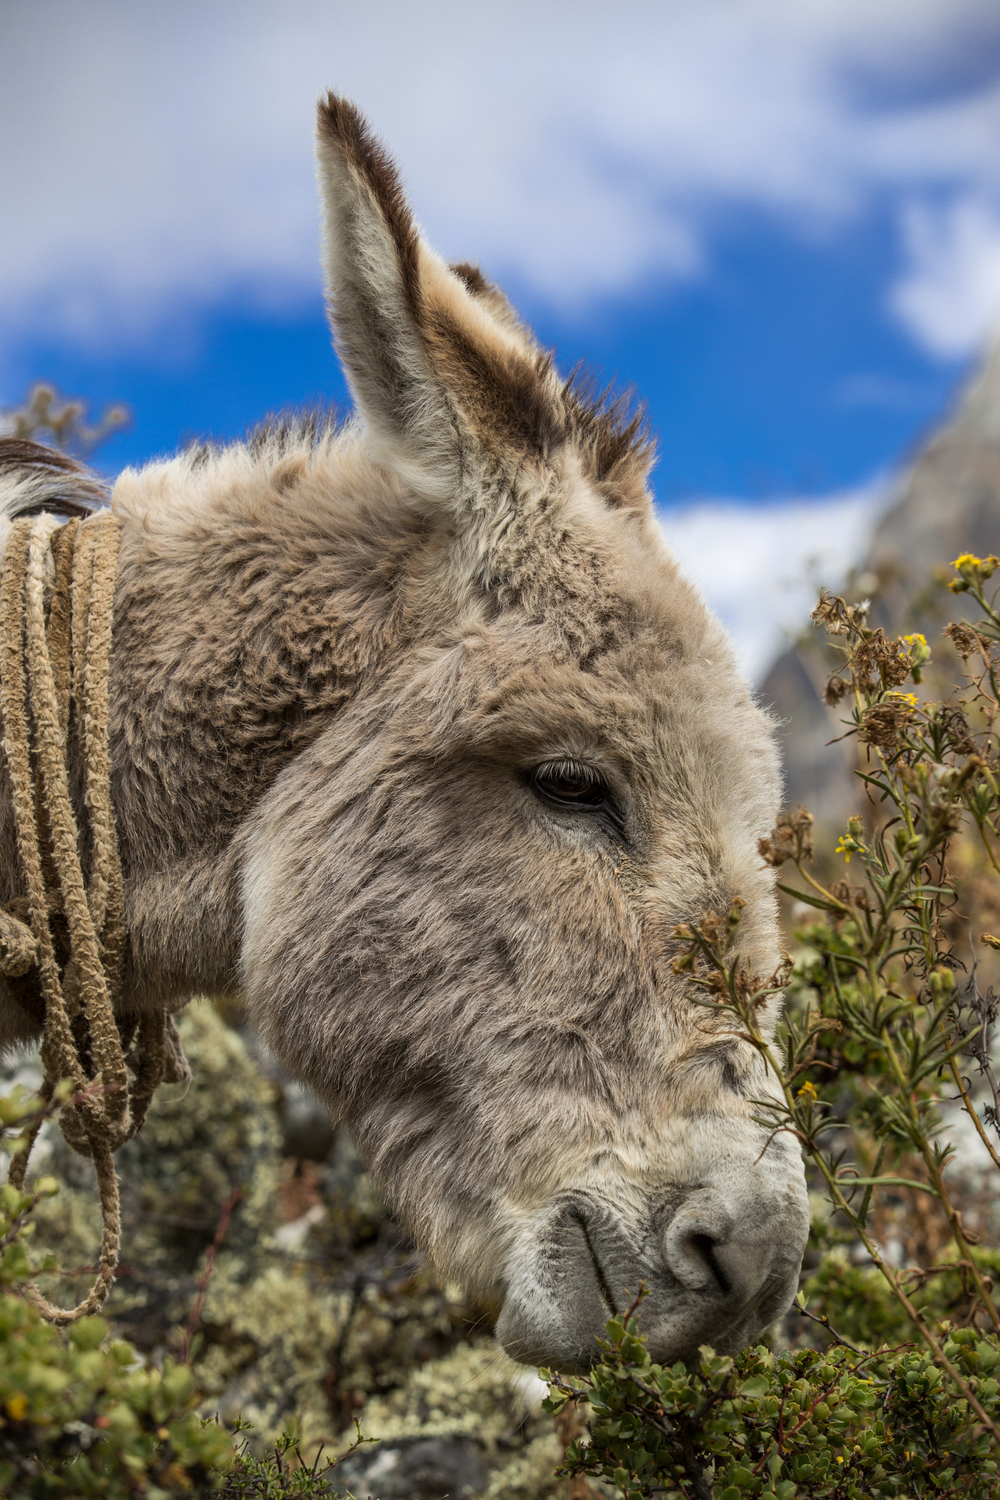 Donkey in Peru eating grass